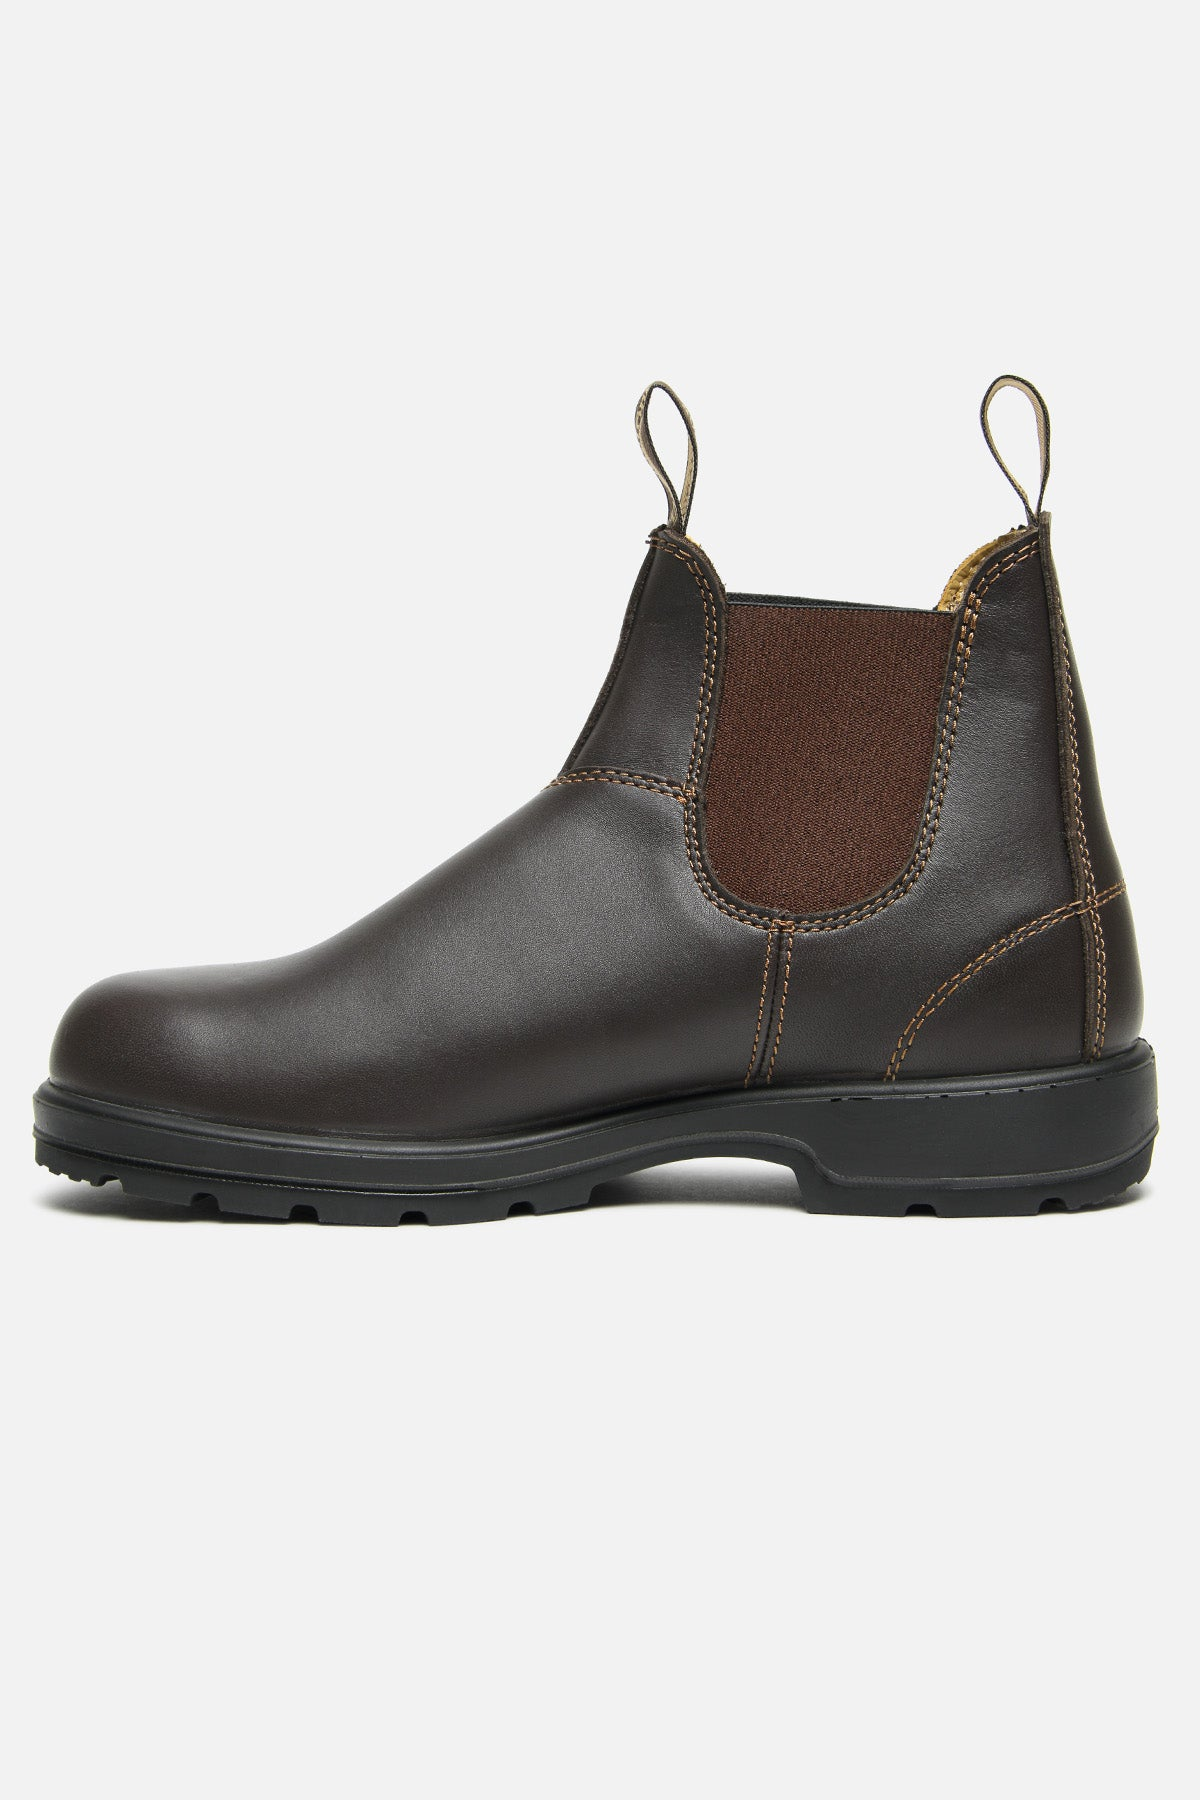 BLUNDSTONE SUPER 550 IN WALNUT - Fortune Goods